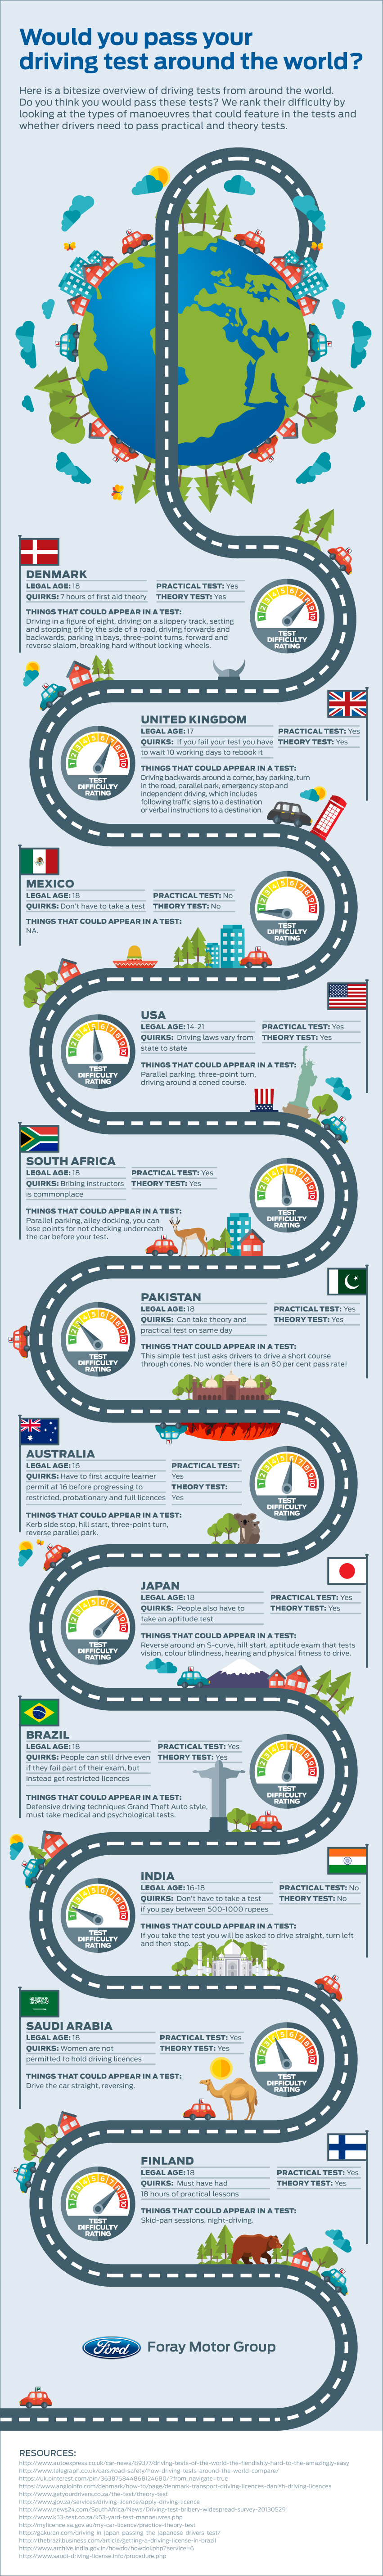 Would You Pass Your Driving Test Around the World?